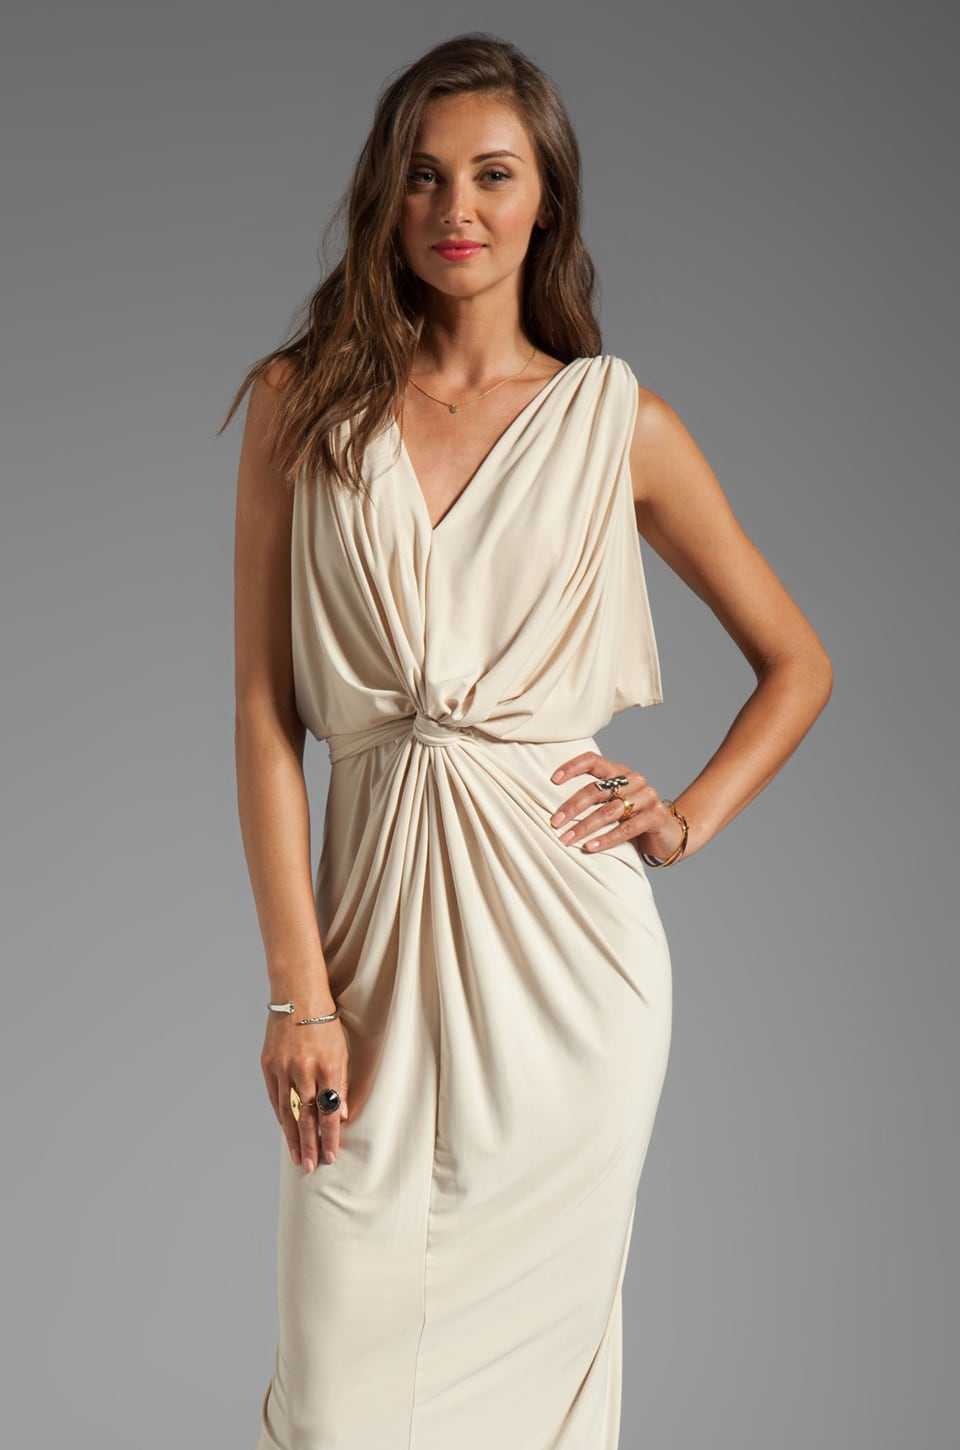 T-Bags LosAngeles Drape Sleeve Maxi Dress in Cream